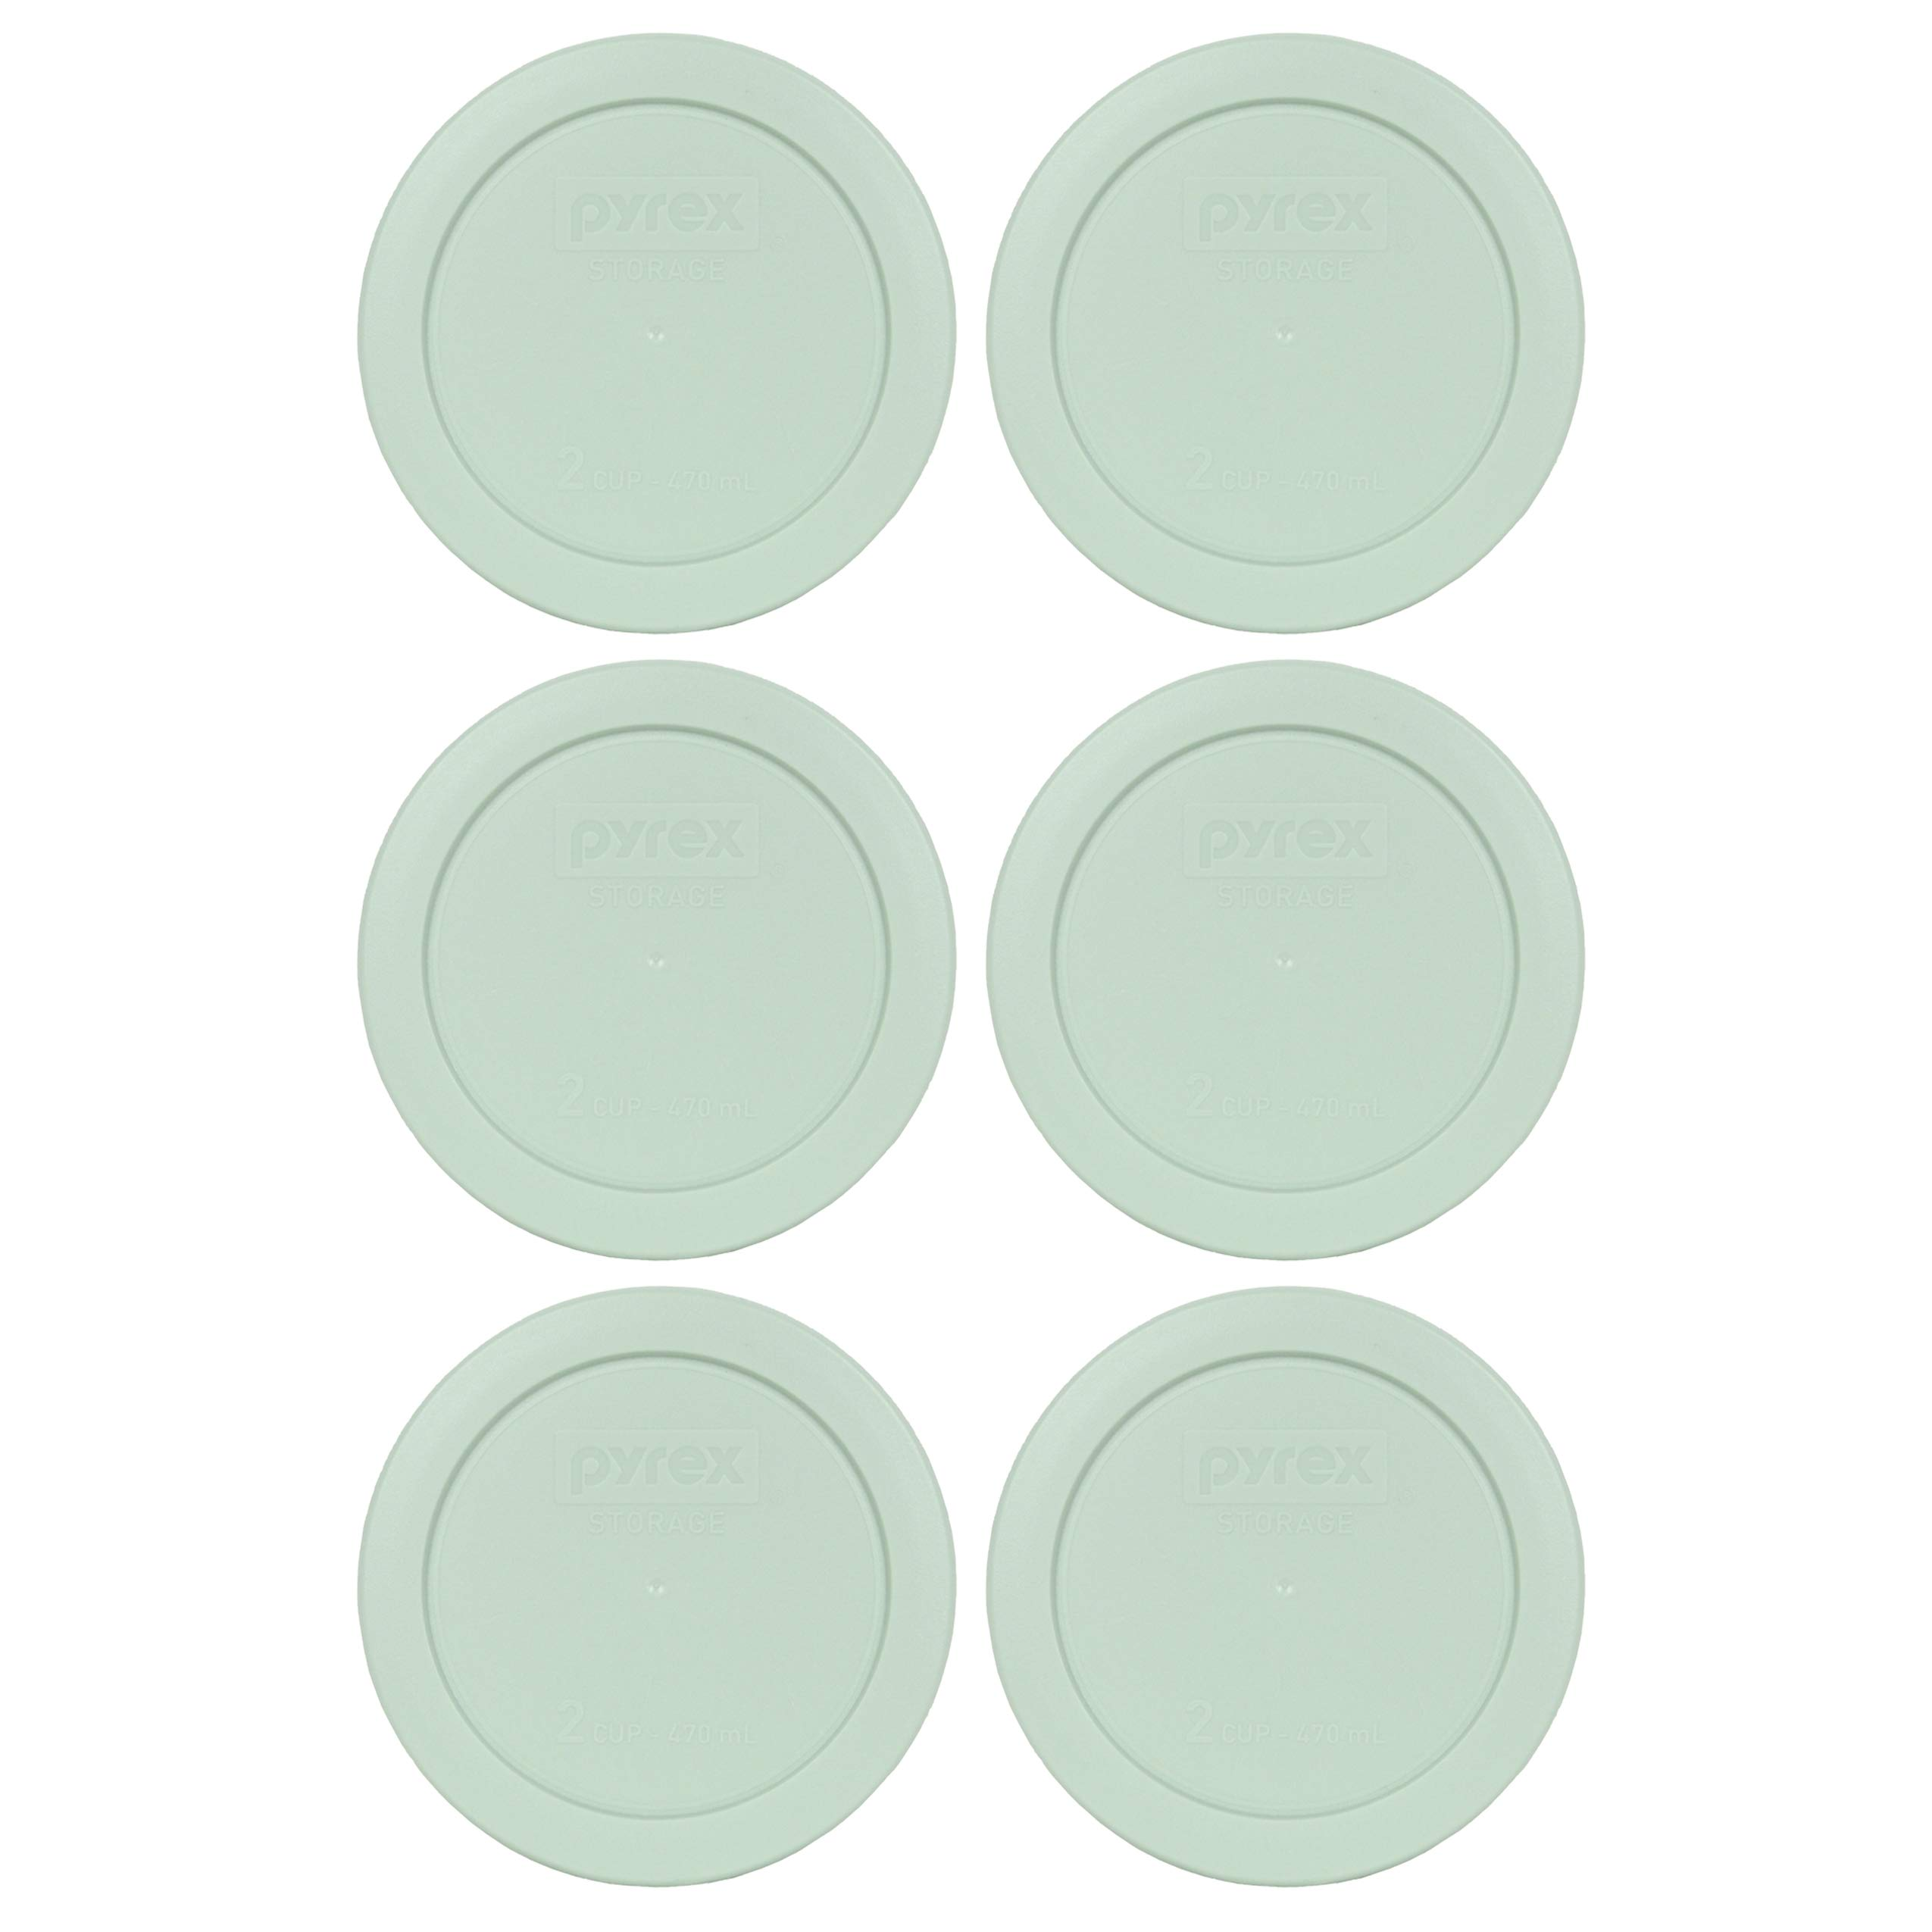 Pyrex 7200-PC 2 Cup Light Blue Round Plastic Food Storage Lid - 6 Pack by Pyrex